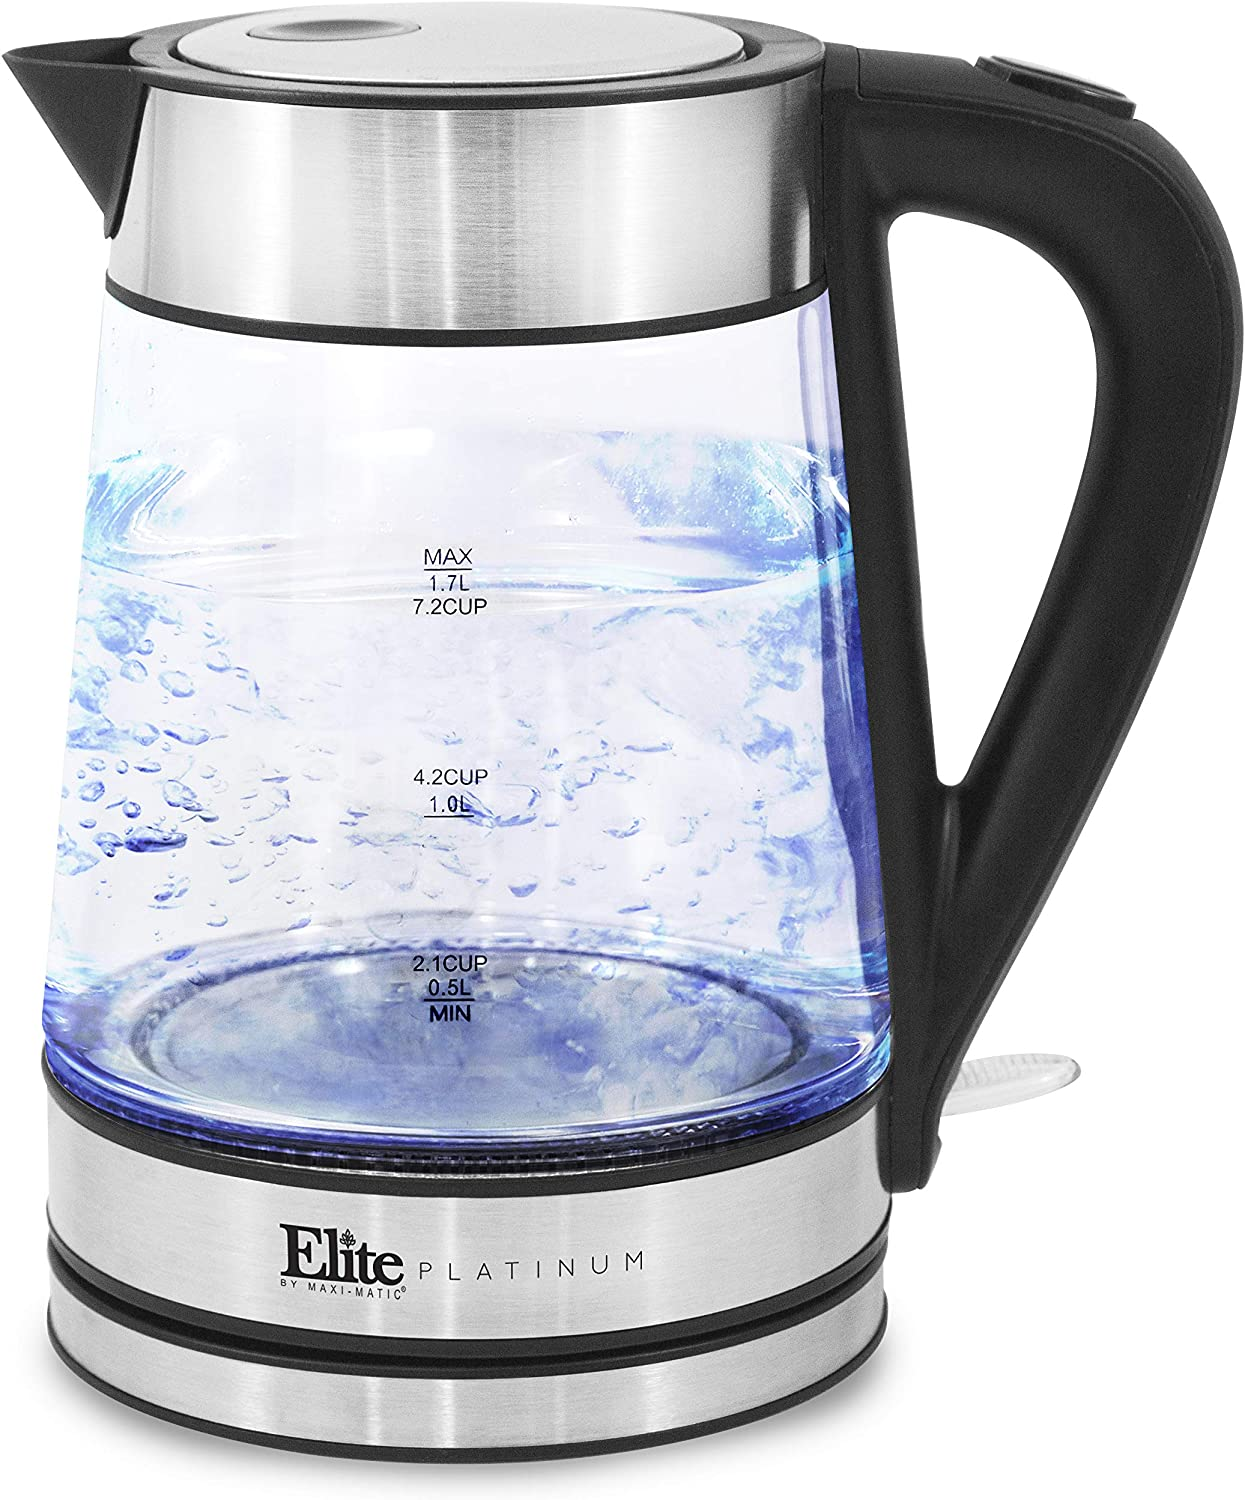 Elite Platinum EKT-602 Glass Electric Tea Kettle Hot Water Heater Boiler BPA-Free with with Blue LED Interior Fast Boil and Auto Shut-Off Strix Controller 1.7L Stainless Steel